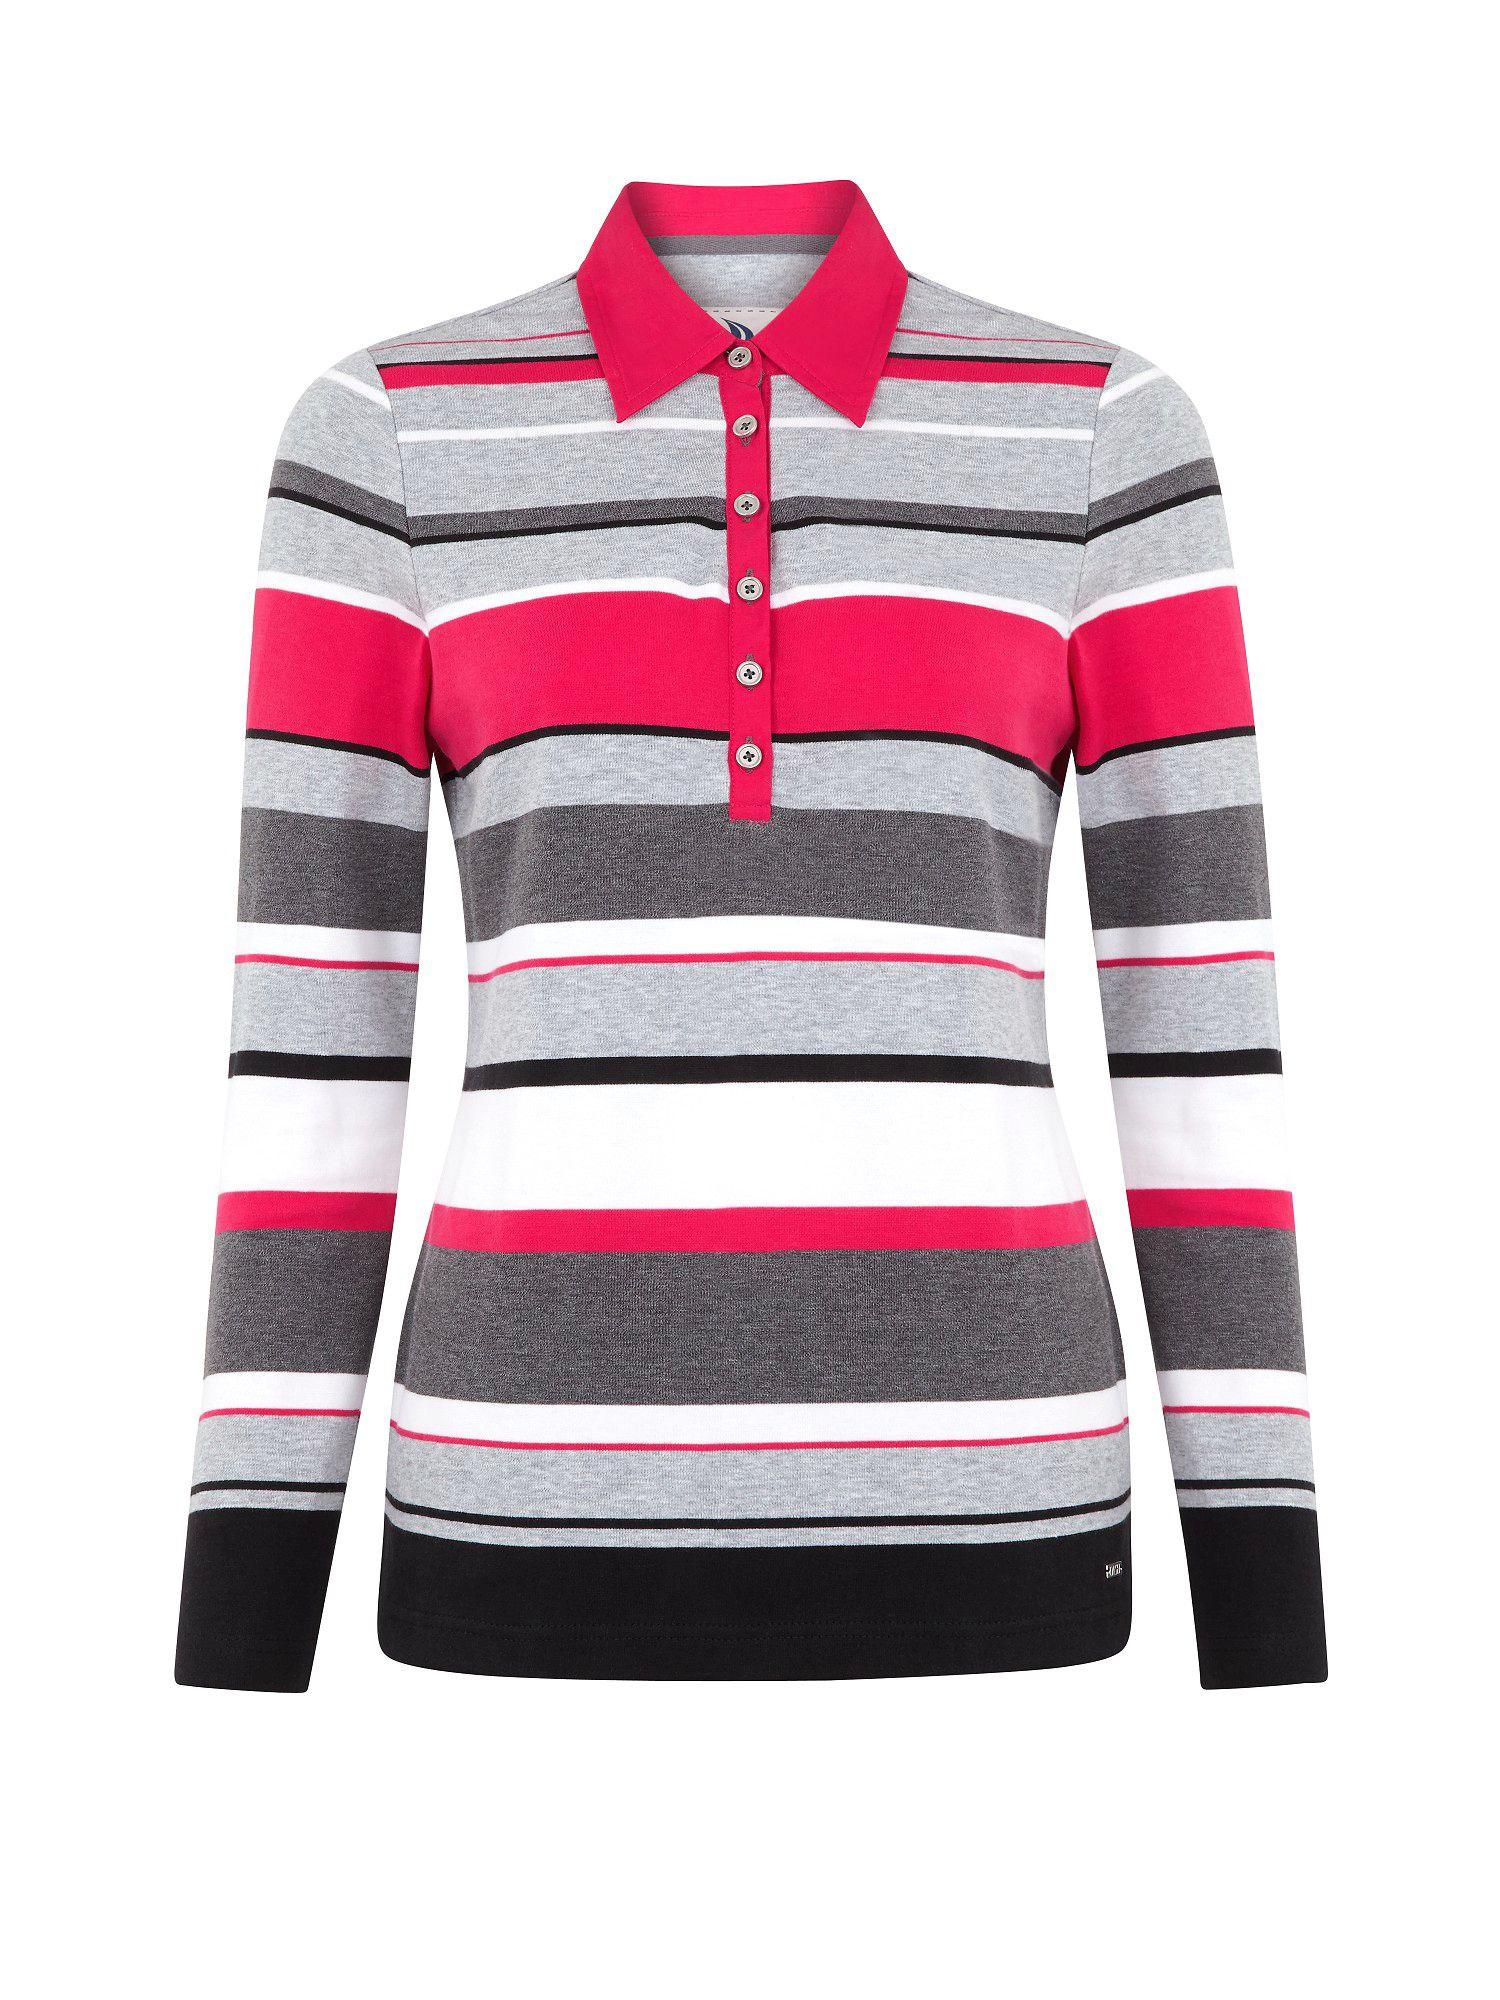 Lyst Dash Raspberry Striped Rugby Top In Pink